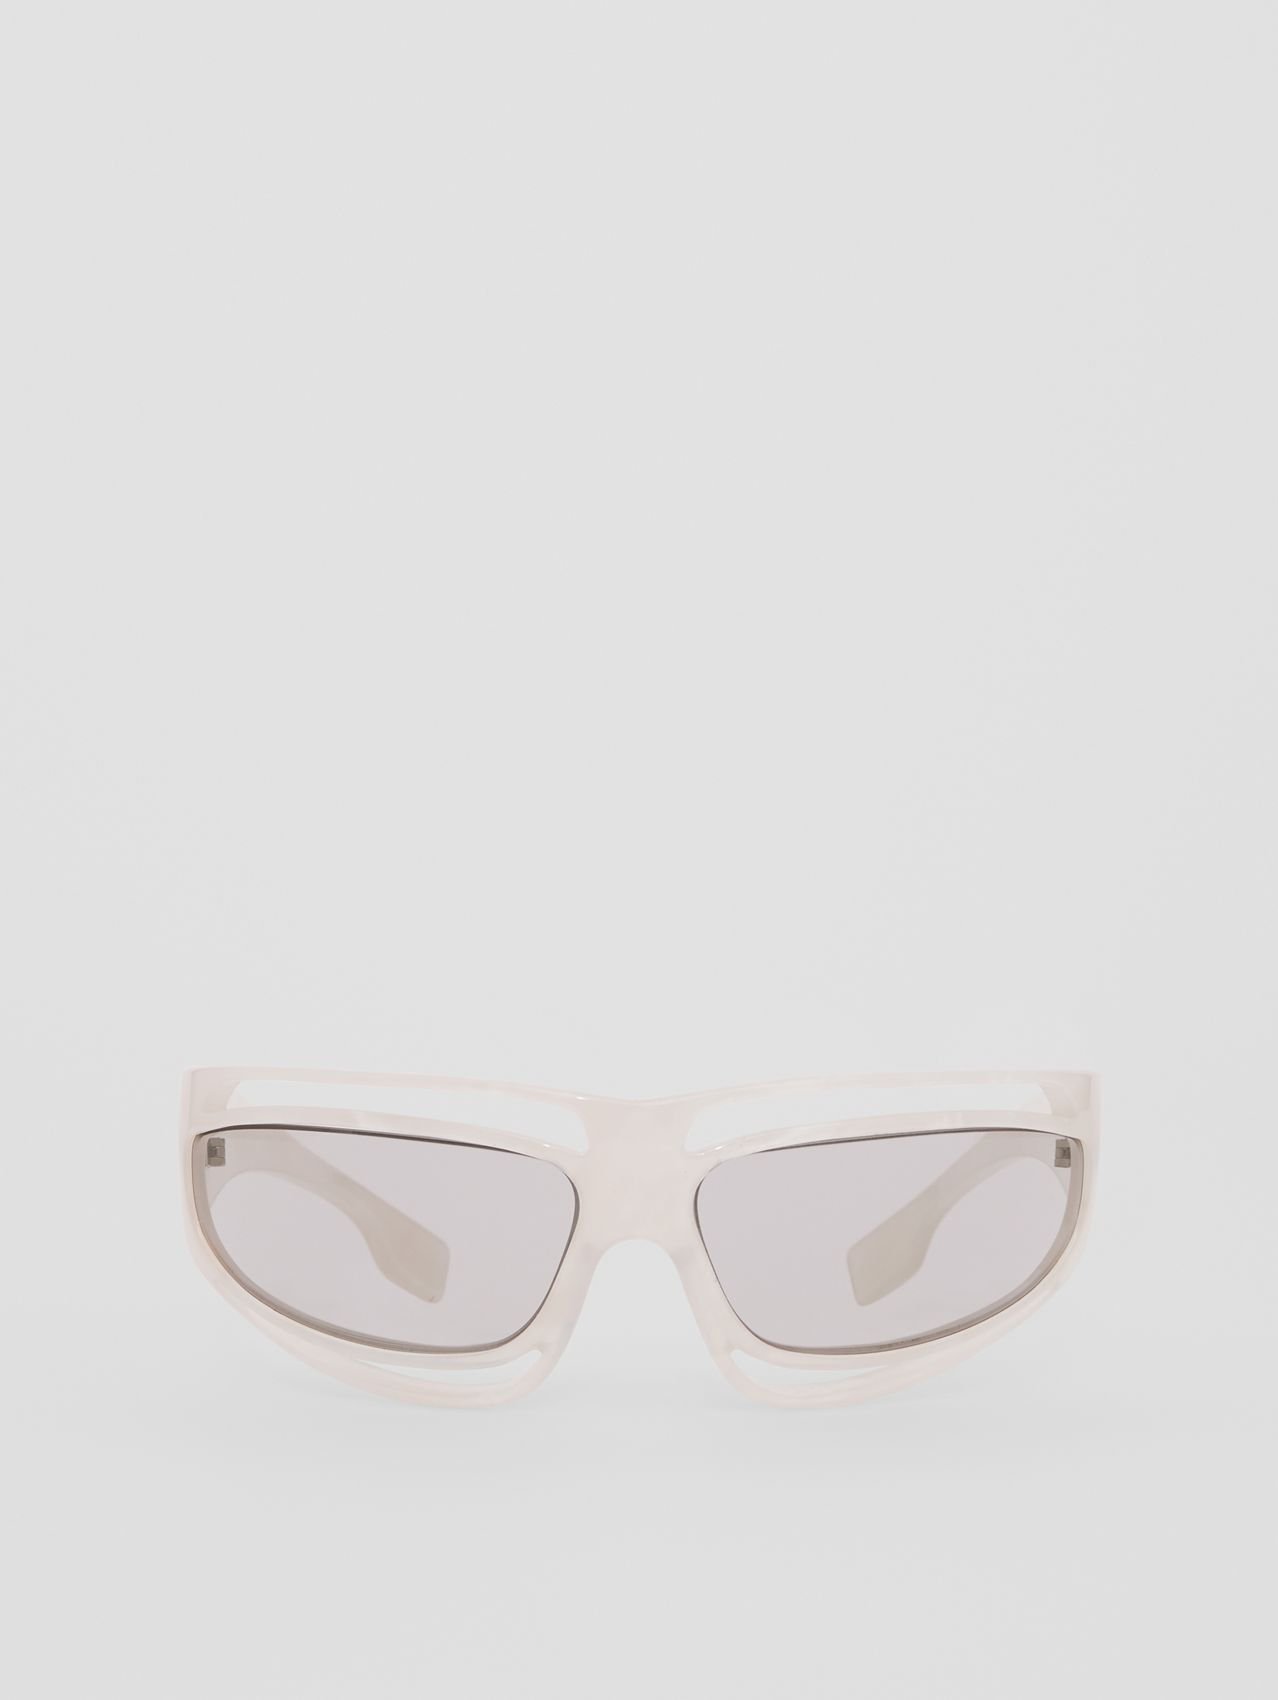 Eliot Sunglasses in Pearl